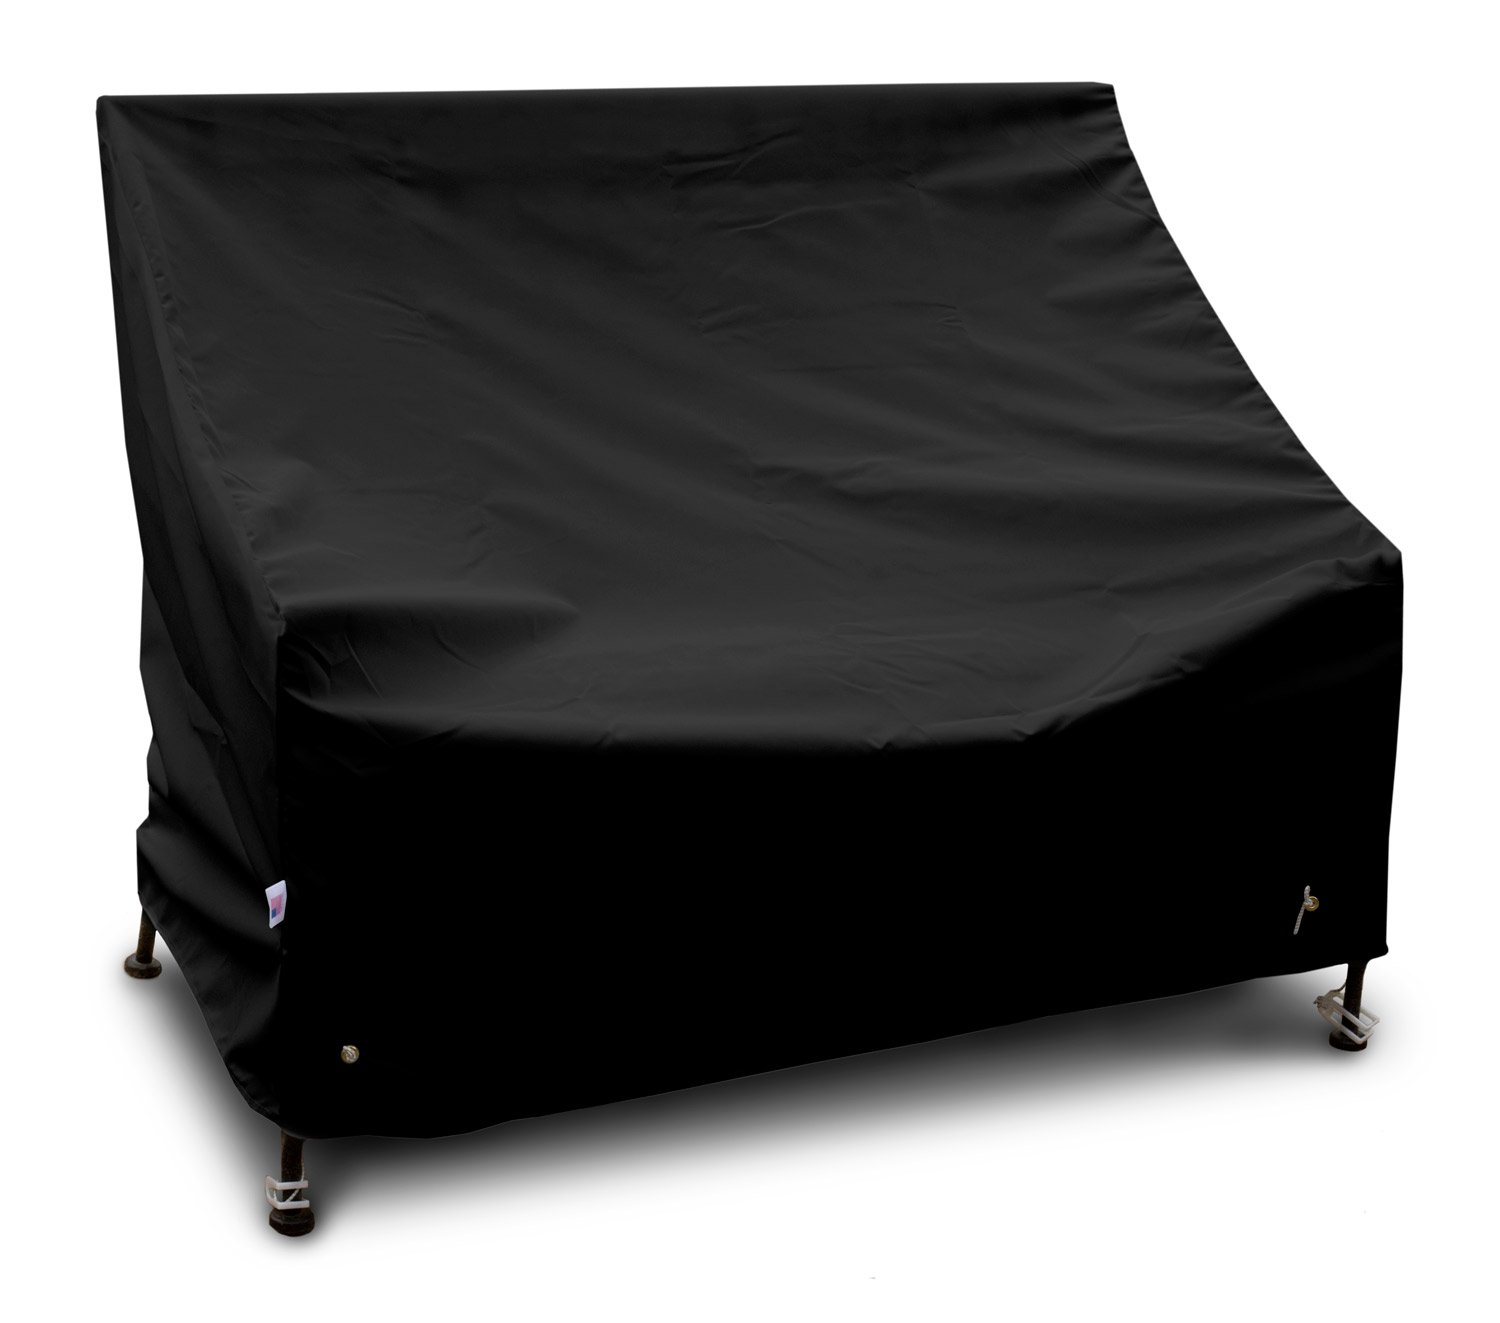 KoverRoos Weathermax 74204 5-Feet Bench/Glider Cover, 75-Inch Width by 28-Inch Diameter by 37-Inch Height, Black